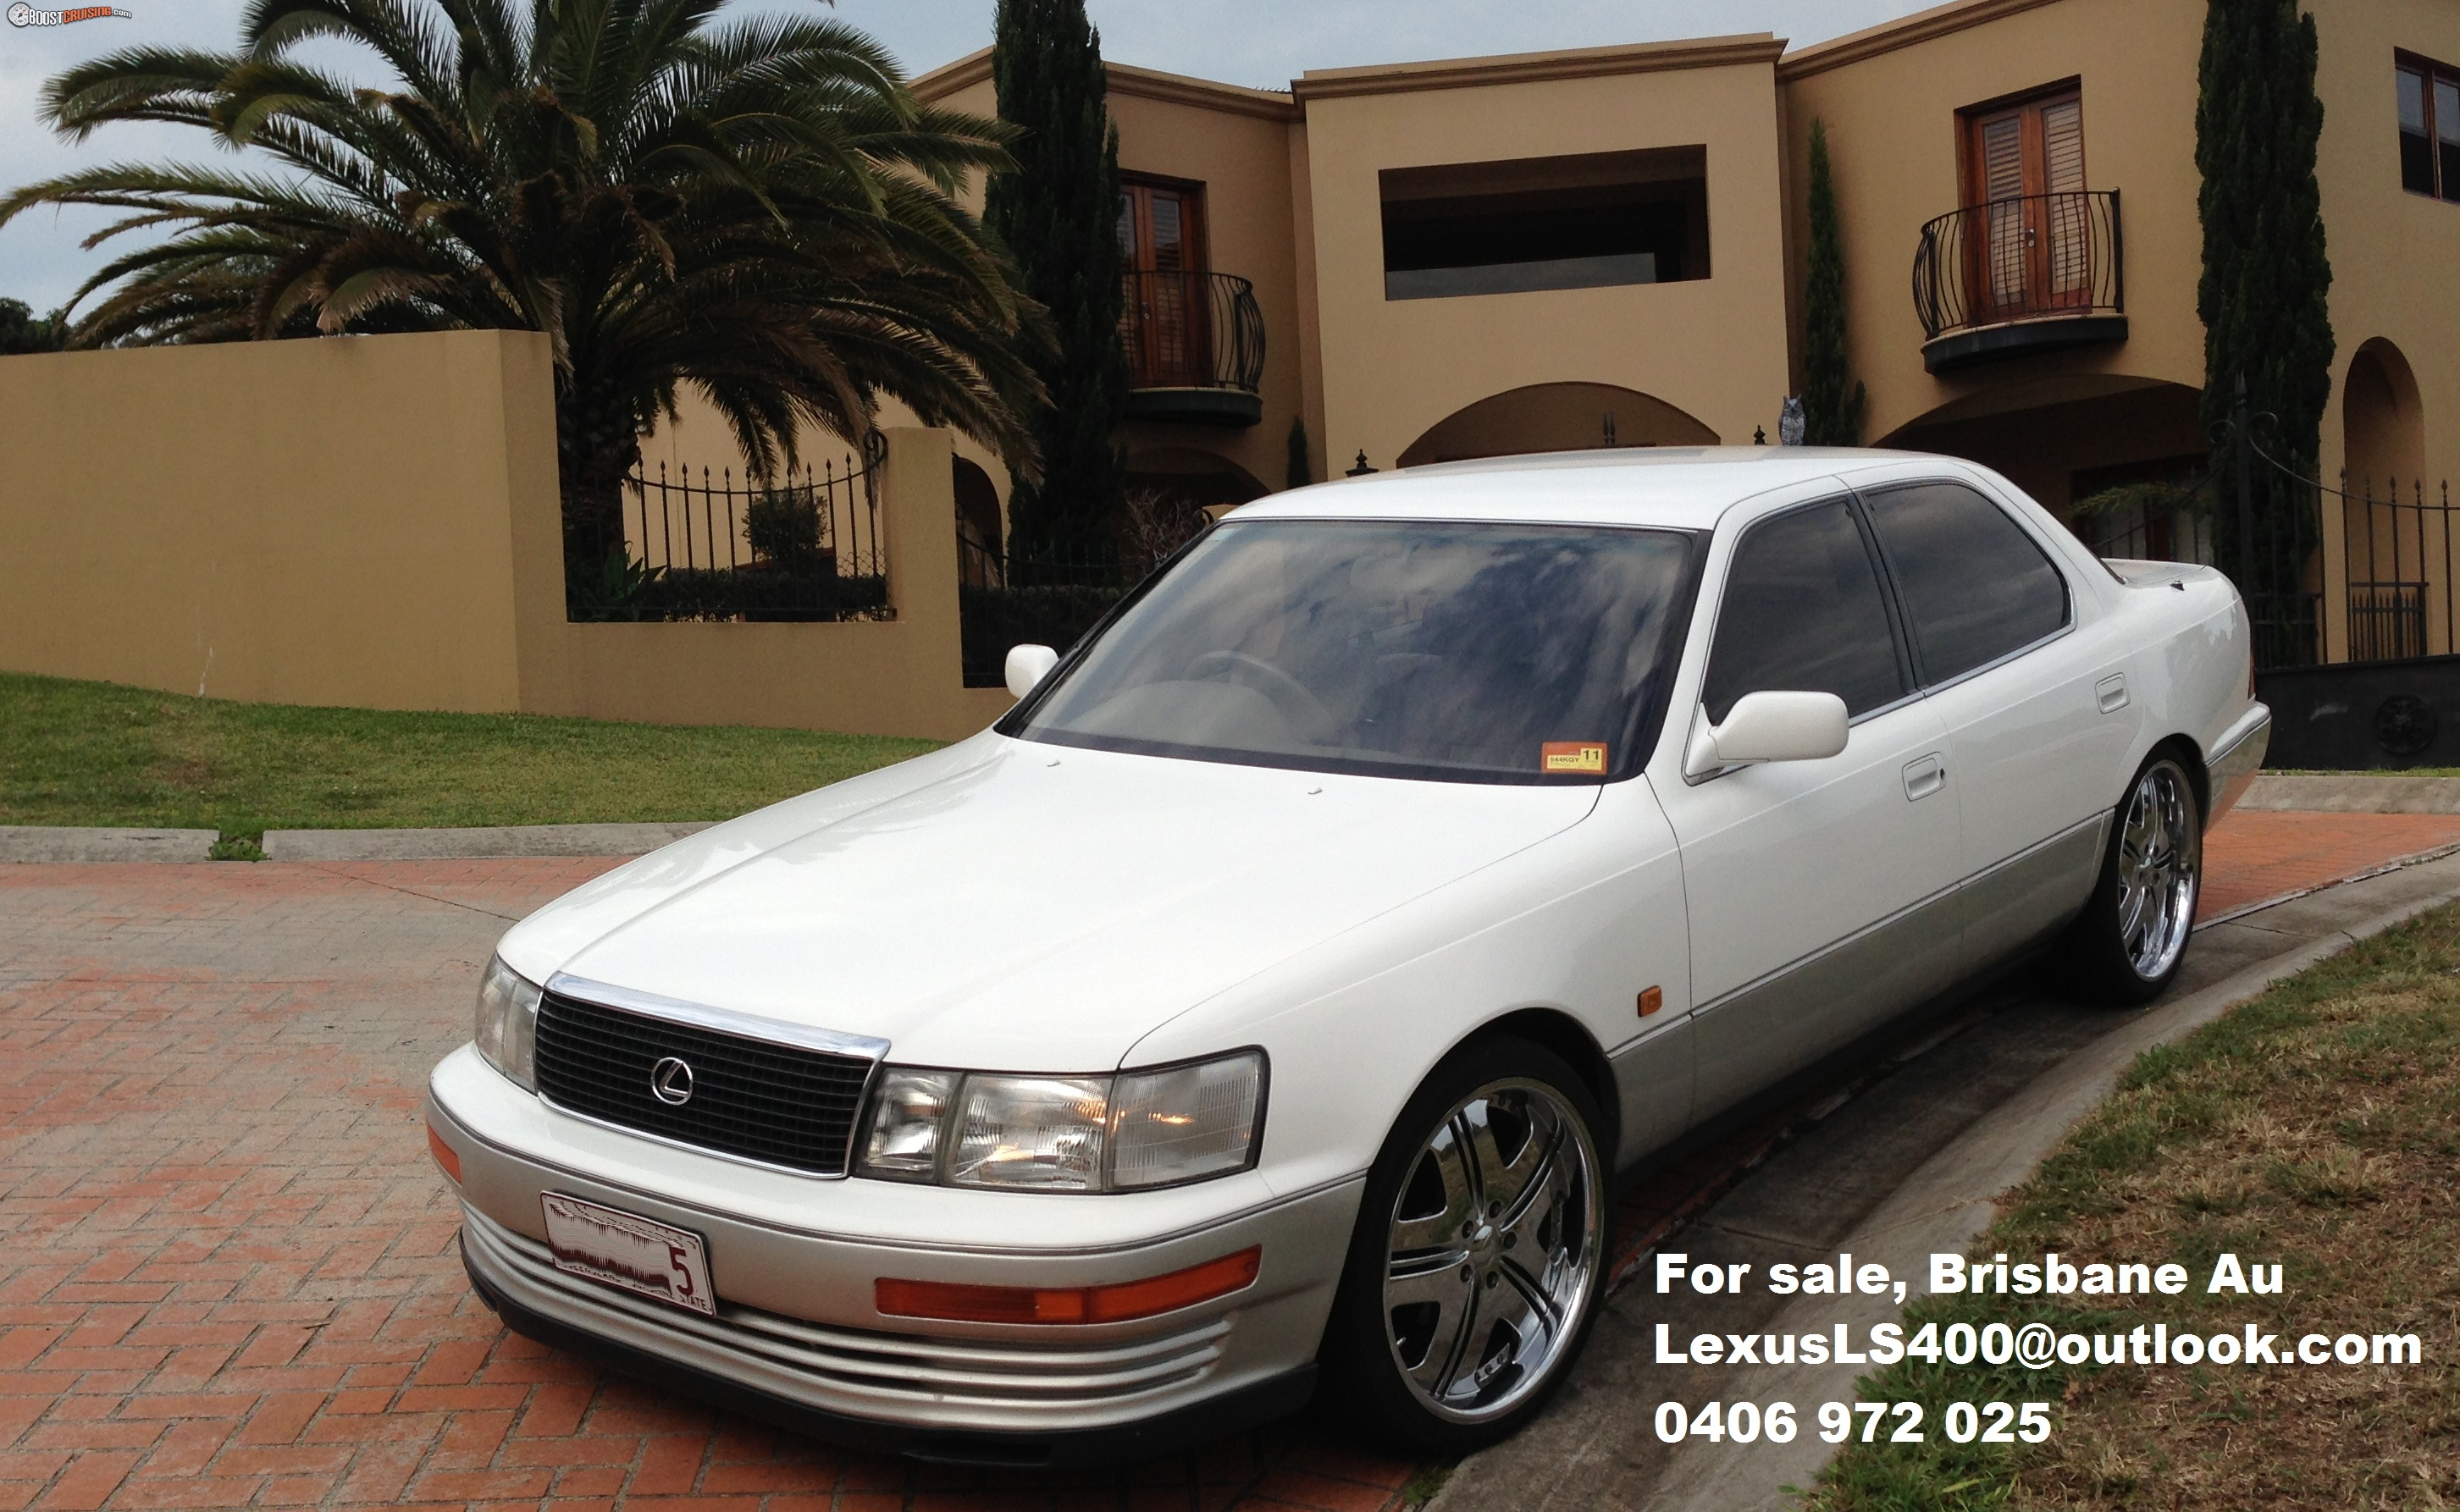 1990 lexus ls400 ucf10r car sales qld brisbane east. Black Bedroom Furniture Sets. Home Design Ideas